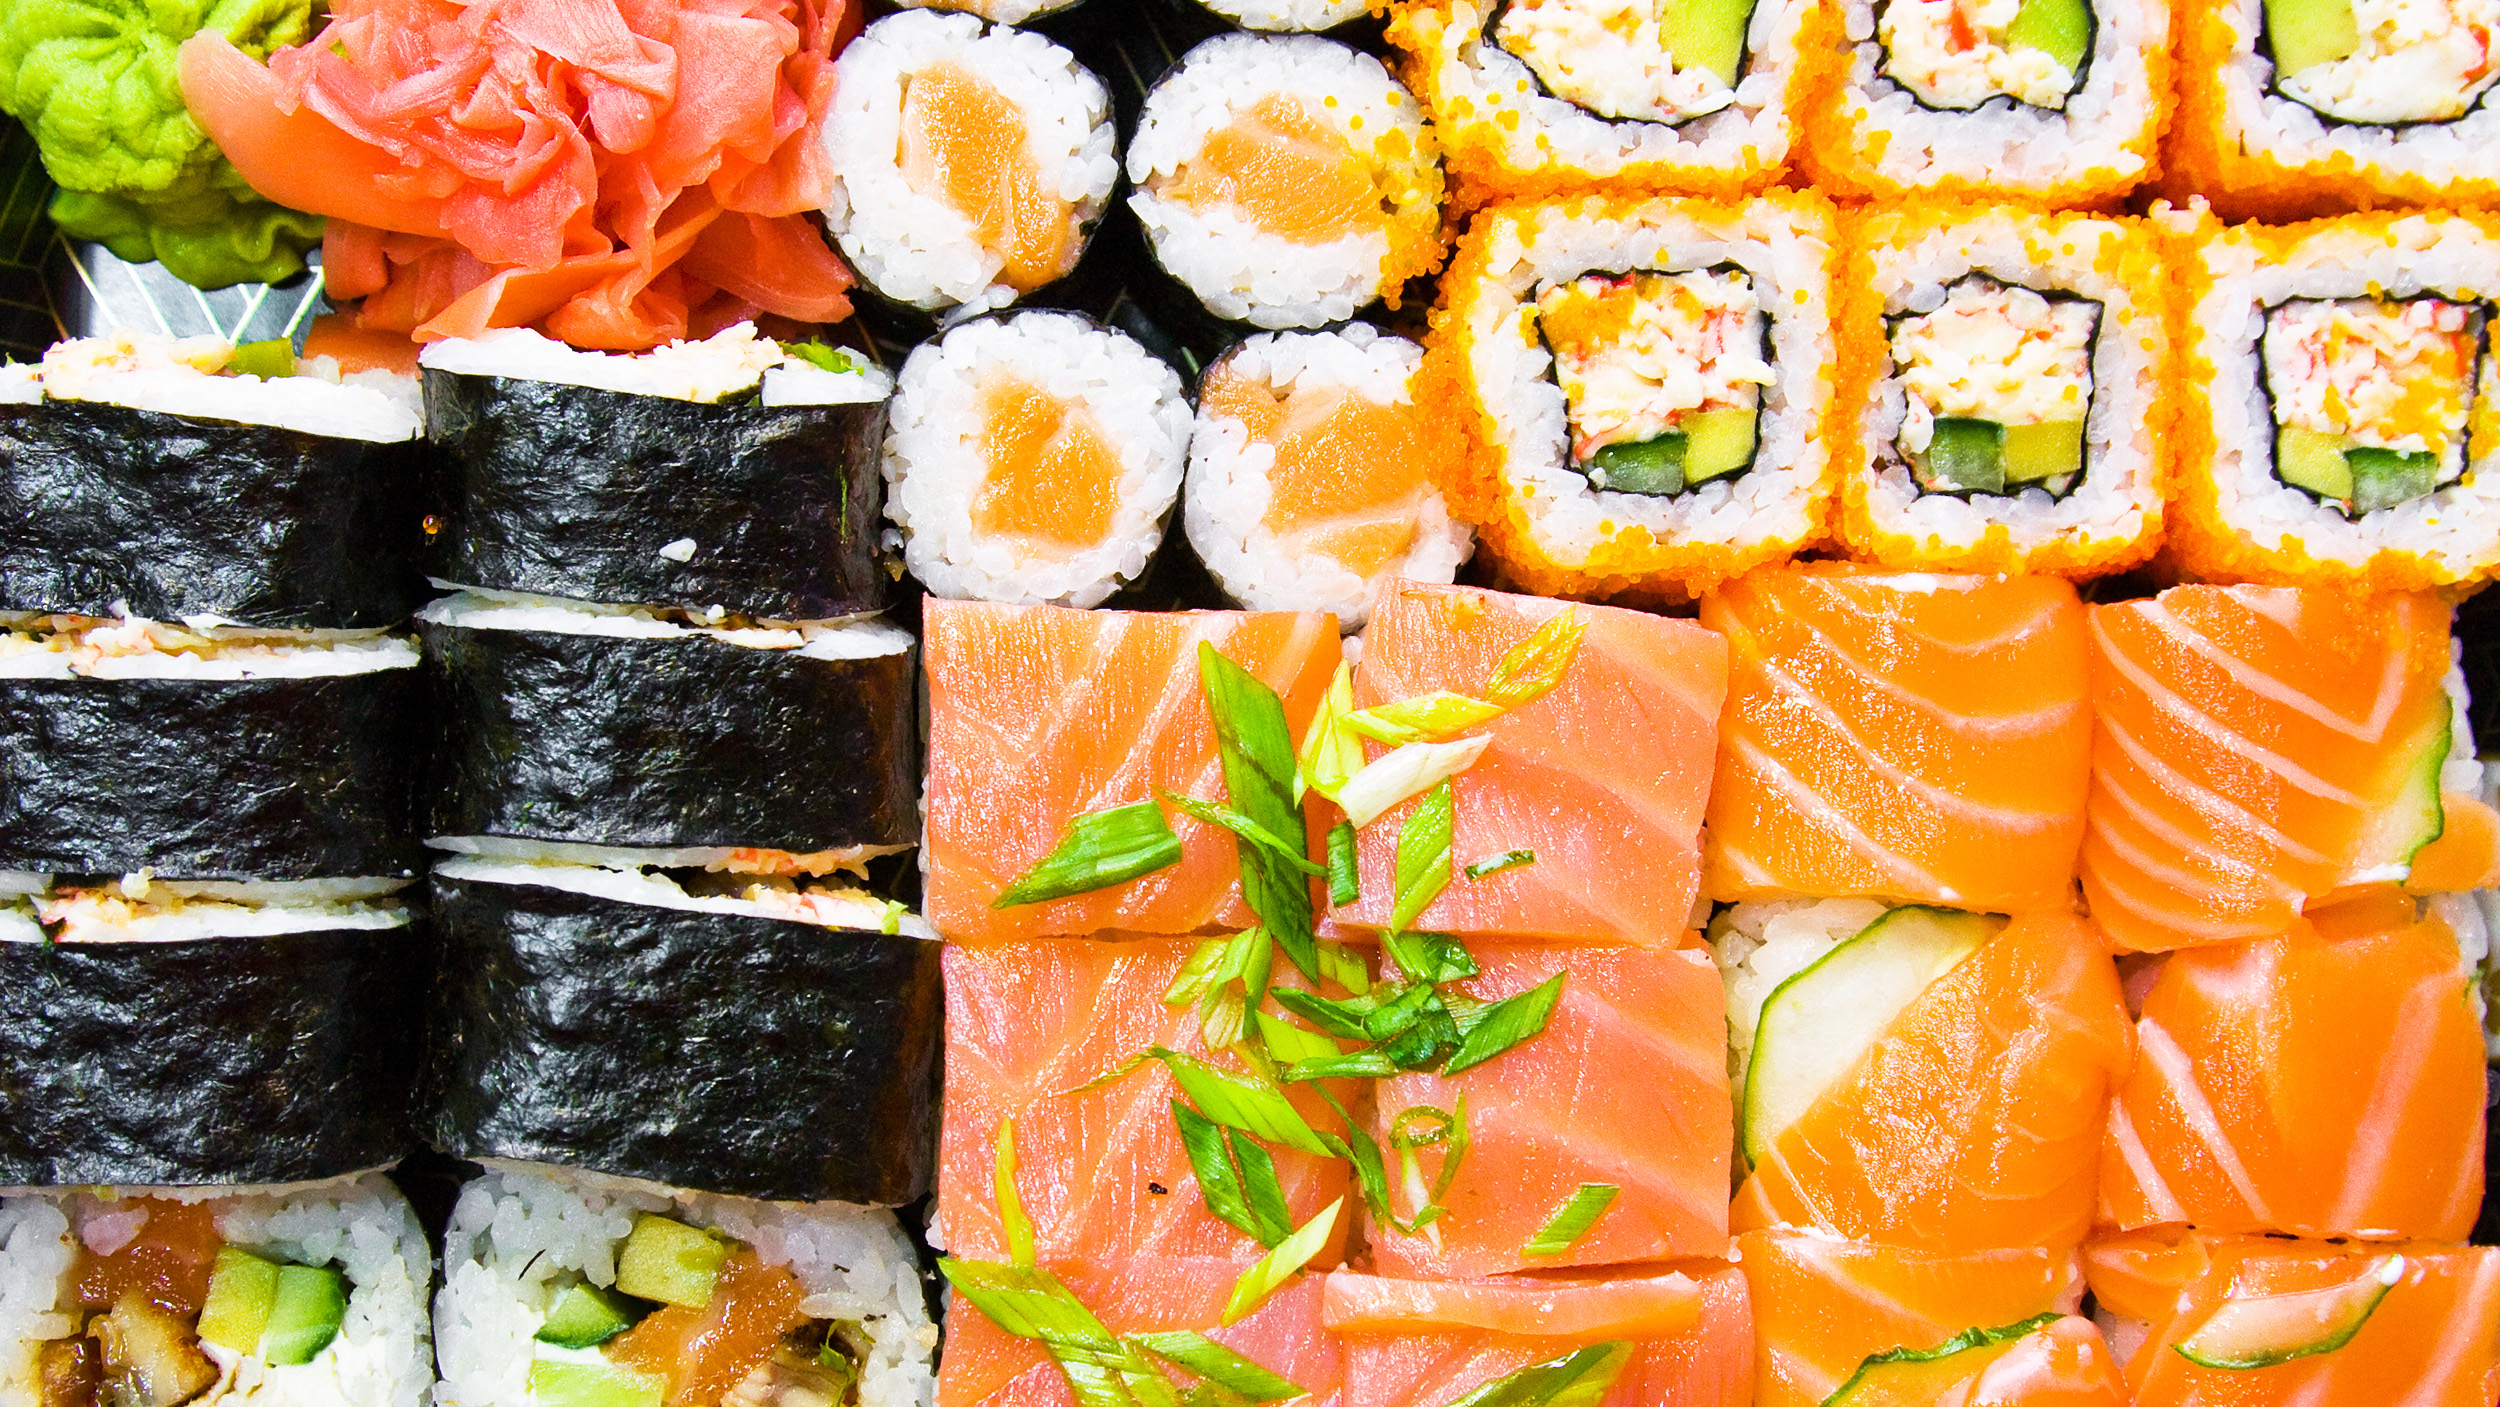 Beware parasites from sushi, raw or undercooked fish